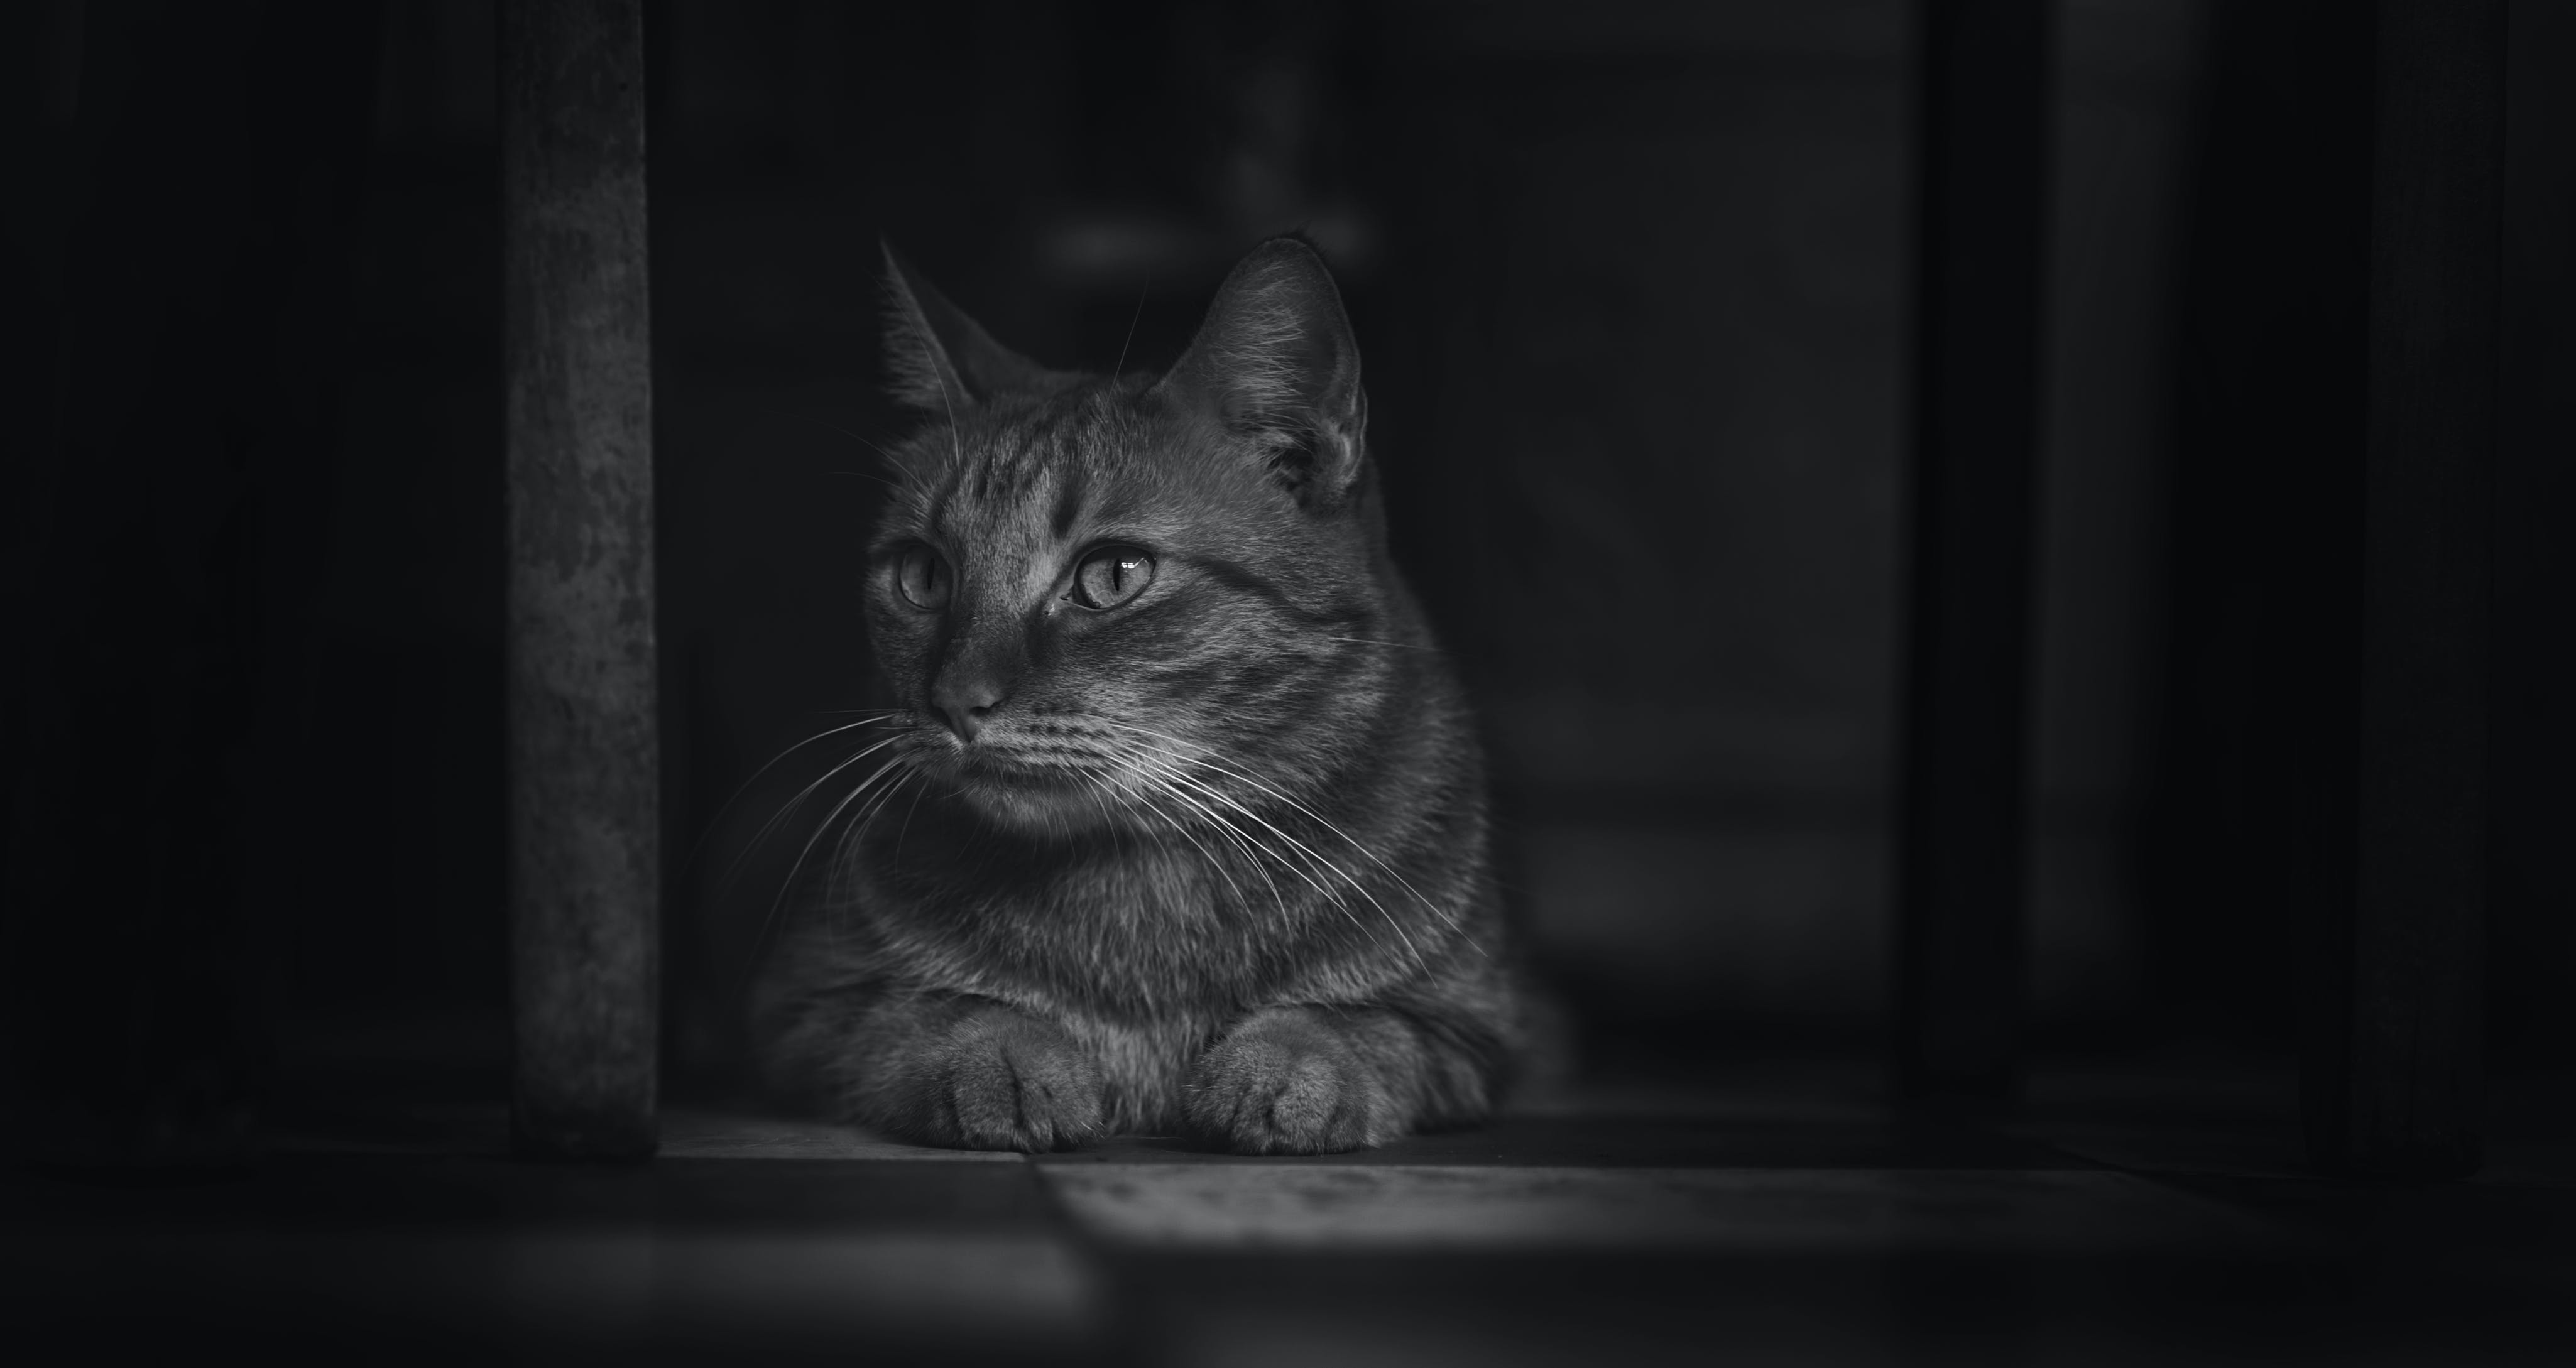 Monochrome Photography of Cat